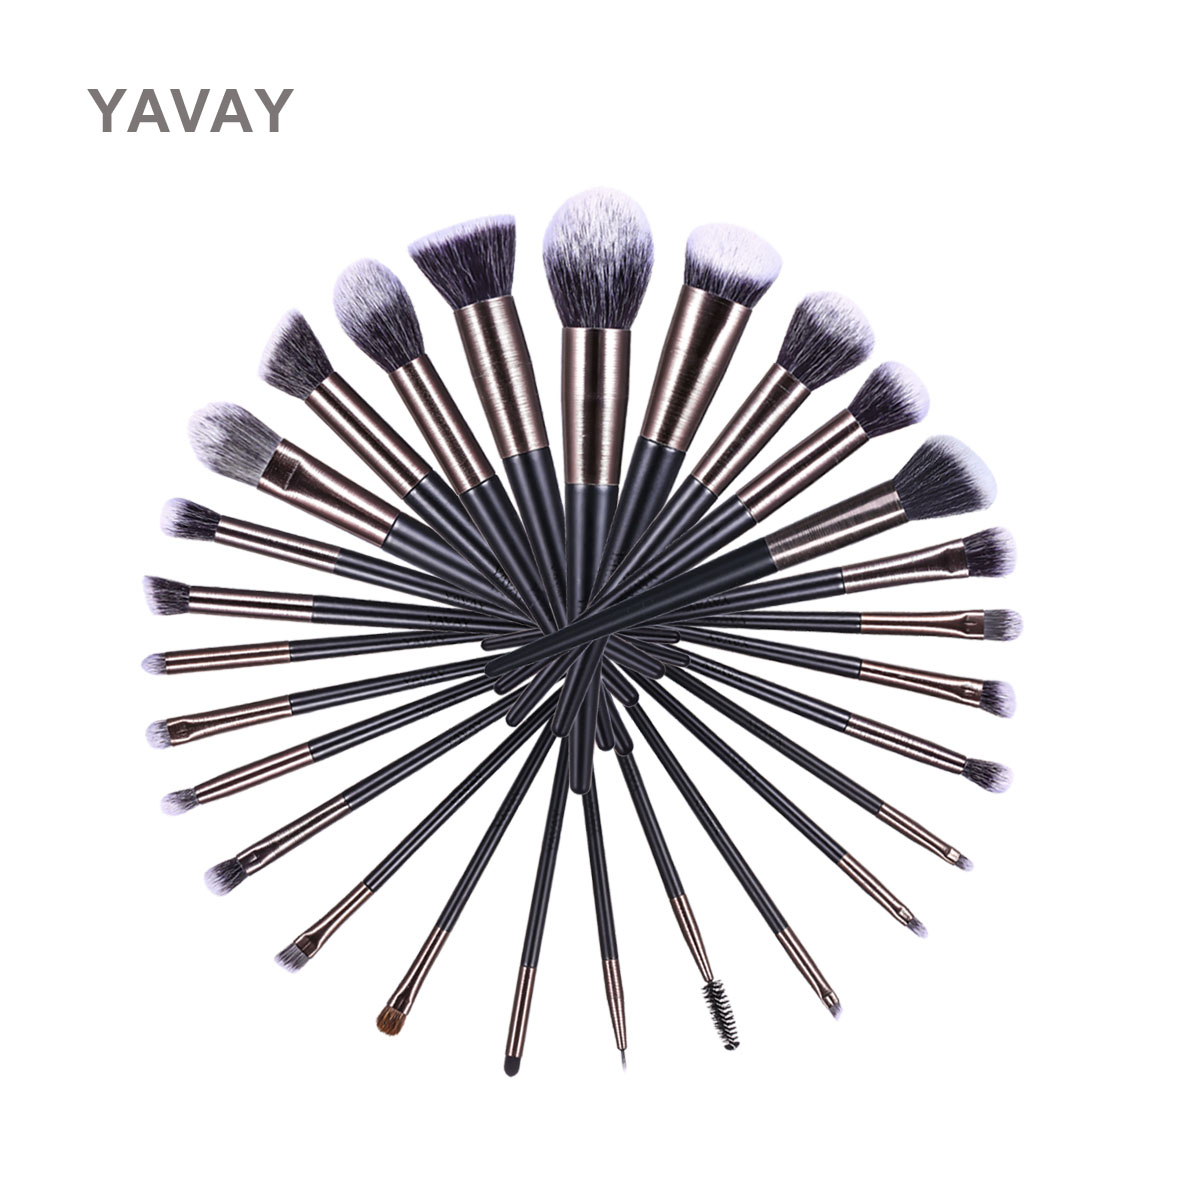 YAVAY Brand 27pieces/lots Black Makeup Brushes Set for Women Cosmetic Tool Nylon Hair Brushes Wood Handle Professional Brushes lit 11 in 1 professional cosmetic makeup brushes set brown coffee 11 pcs